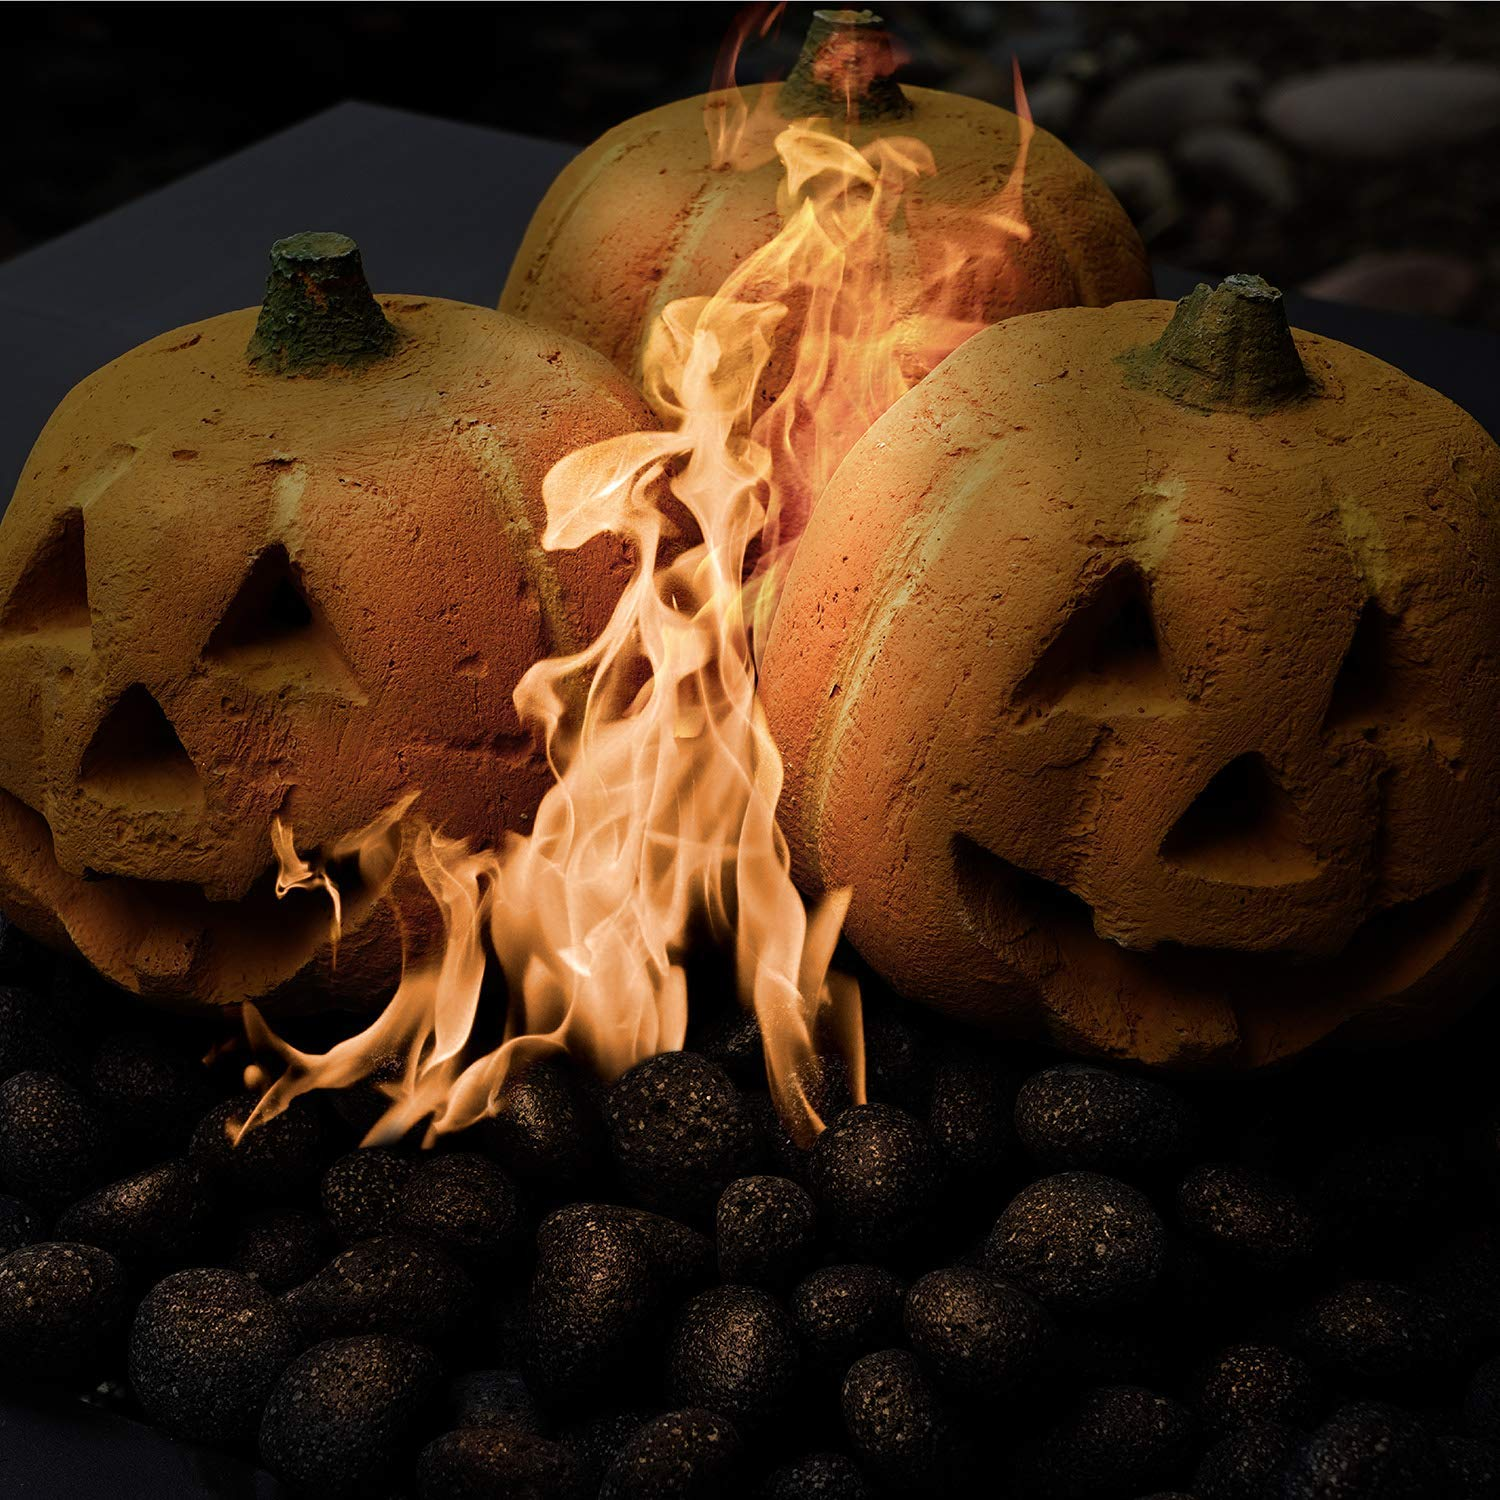 Ceramic Carved Pumpkin | Fireproof Ceramic Decoration for Fire Pits and Fireplaces | Faux Halloween Decor, 1-Pack